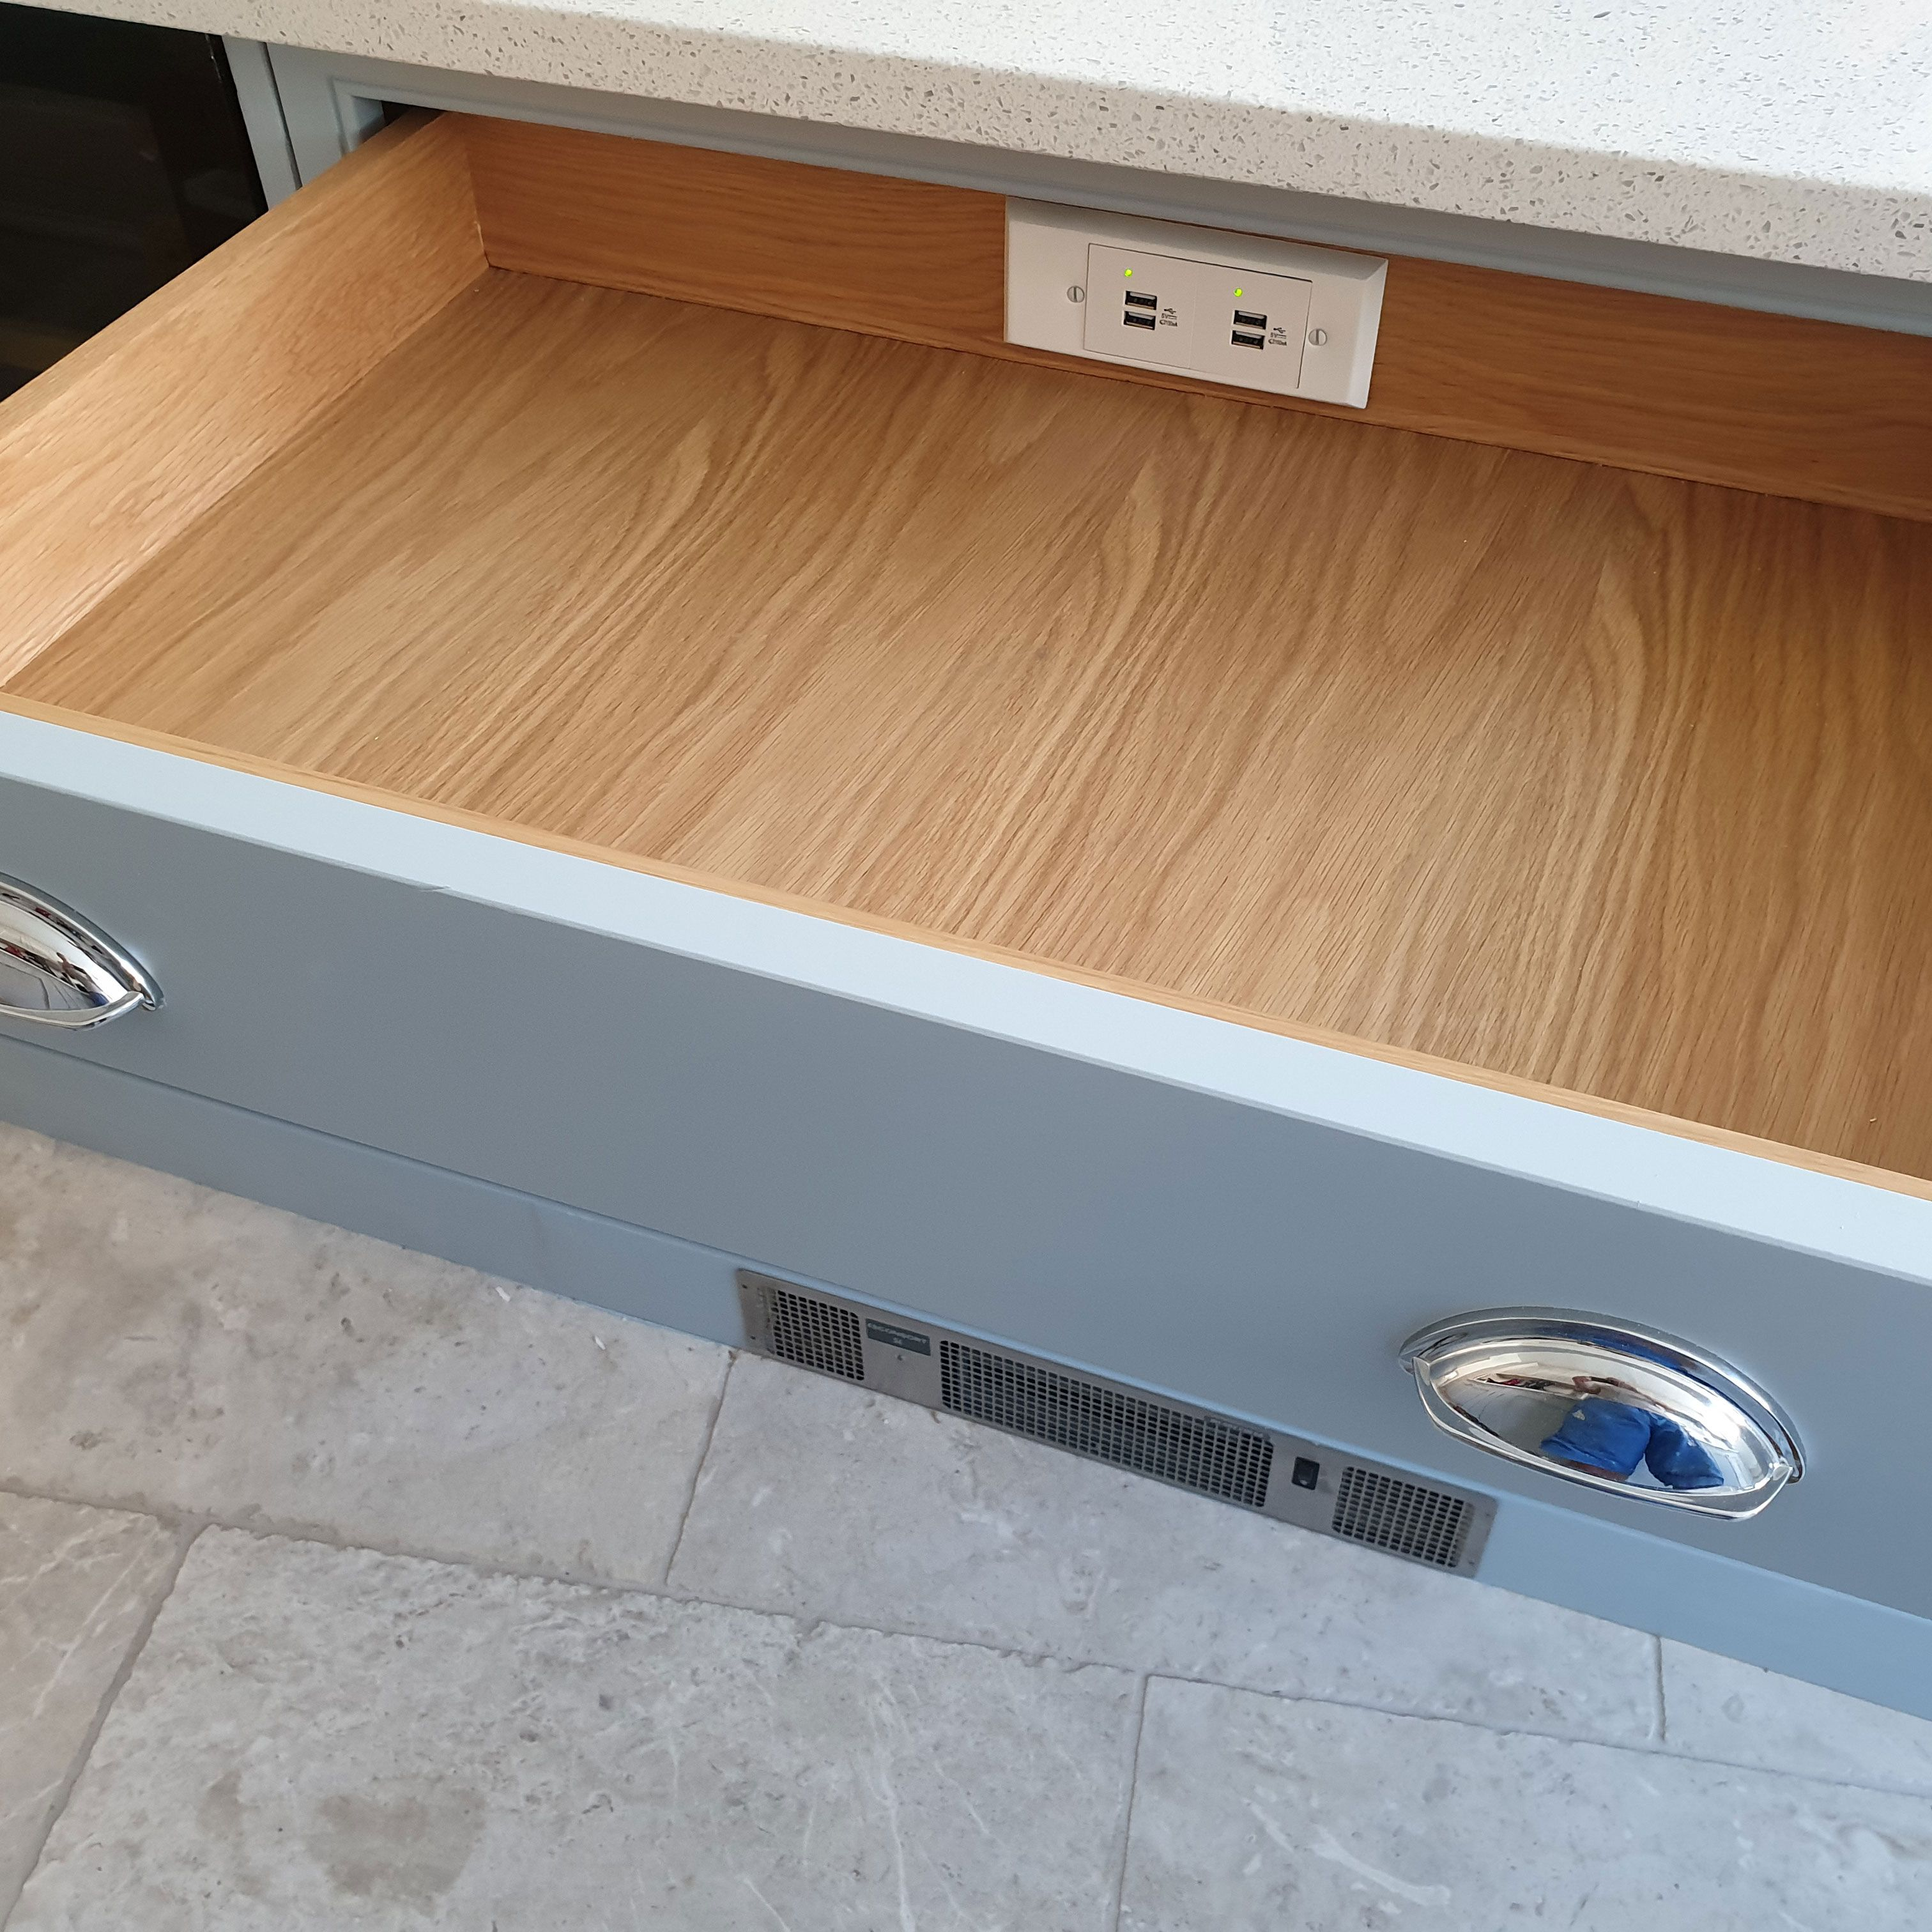 International Outlets Drawers Drawer Space Outlets